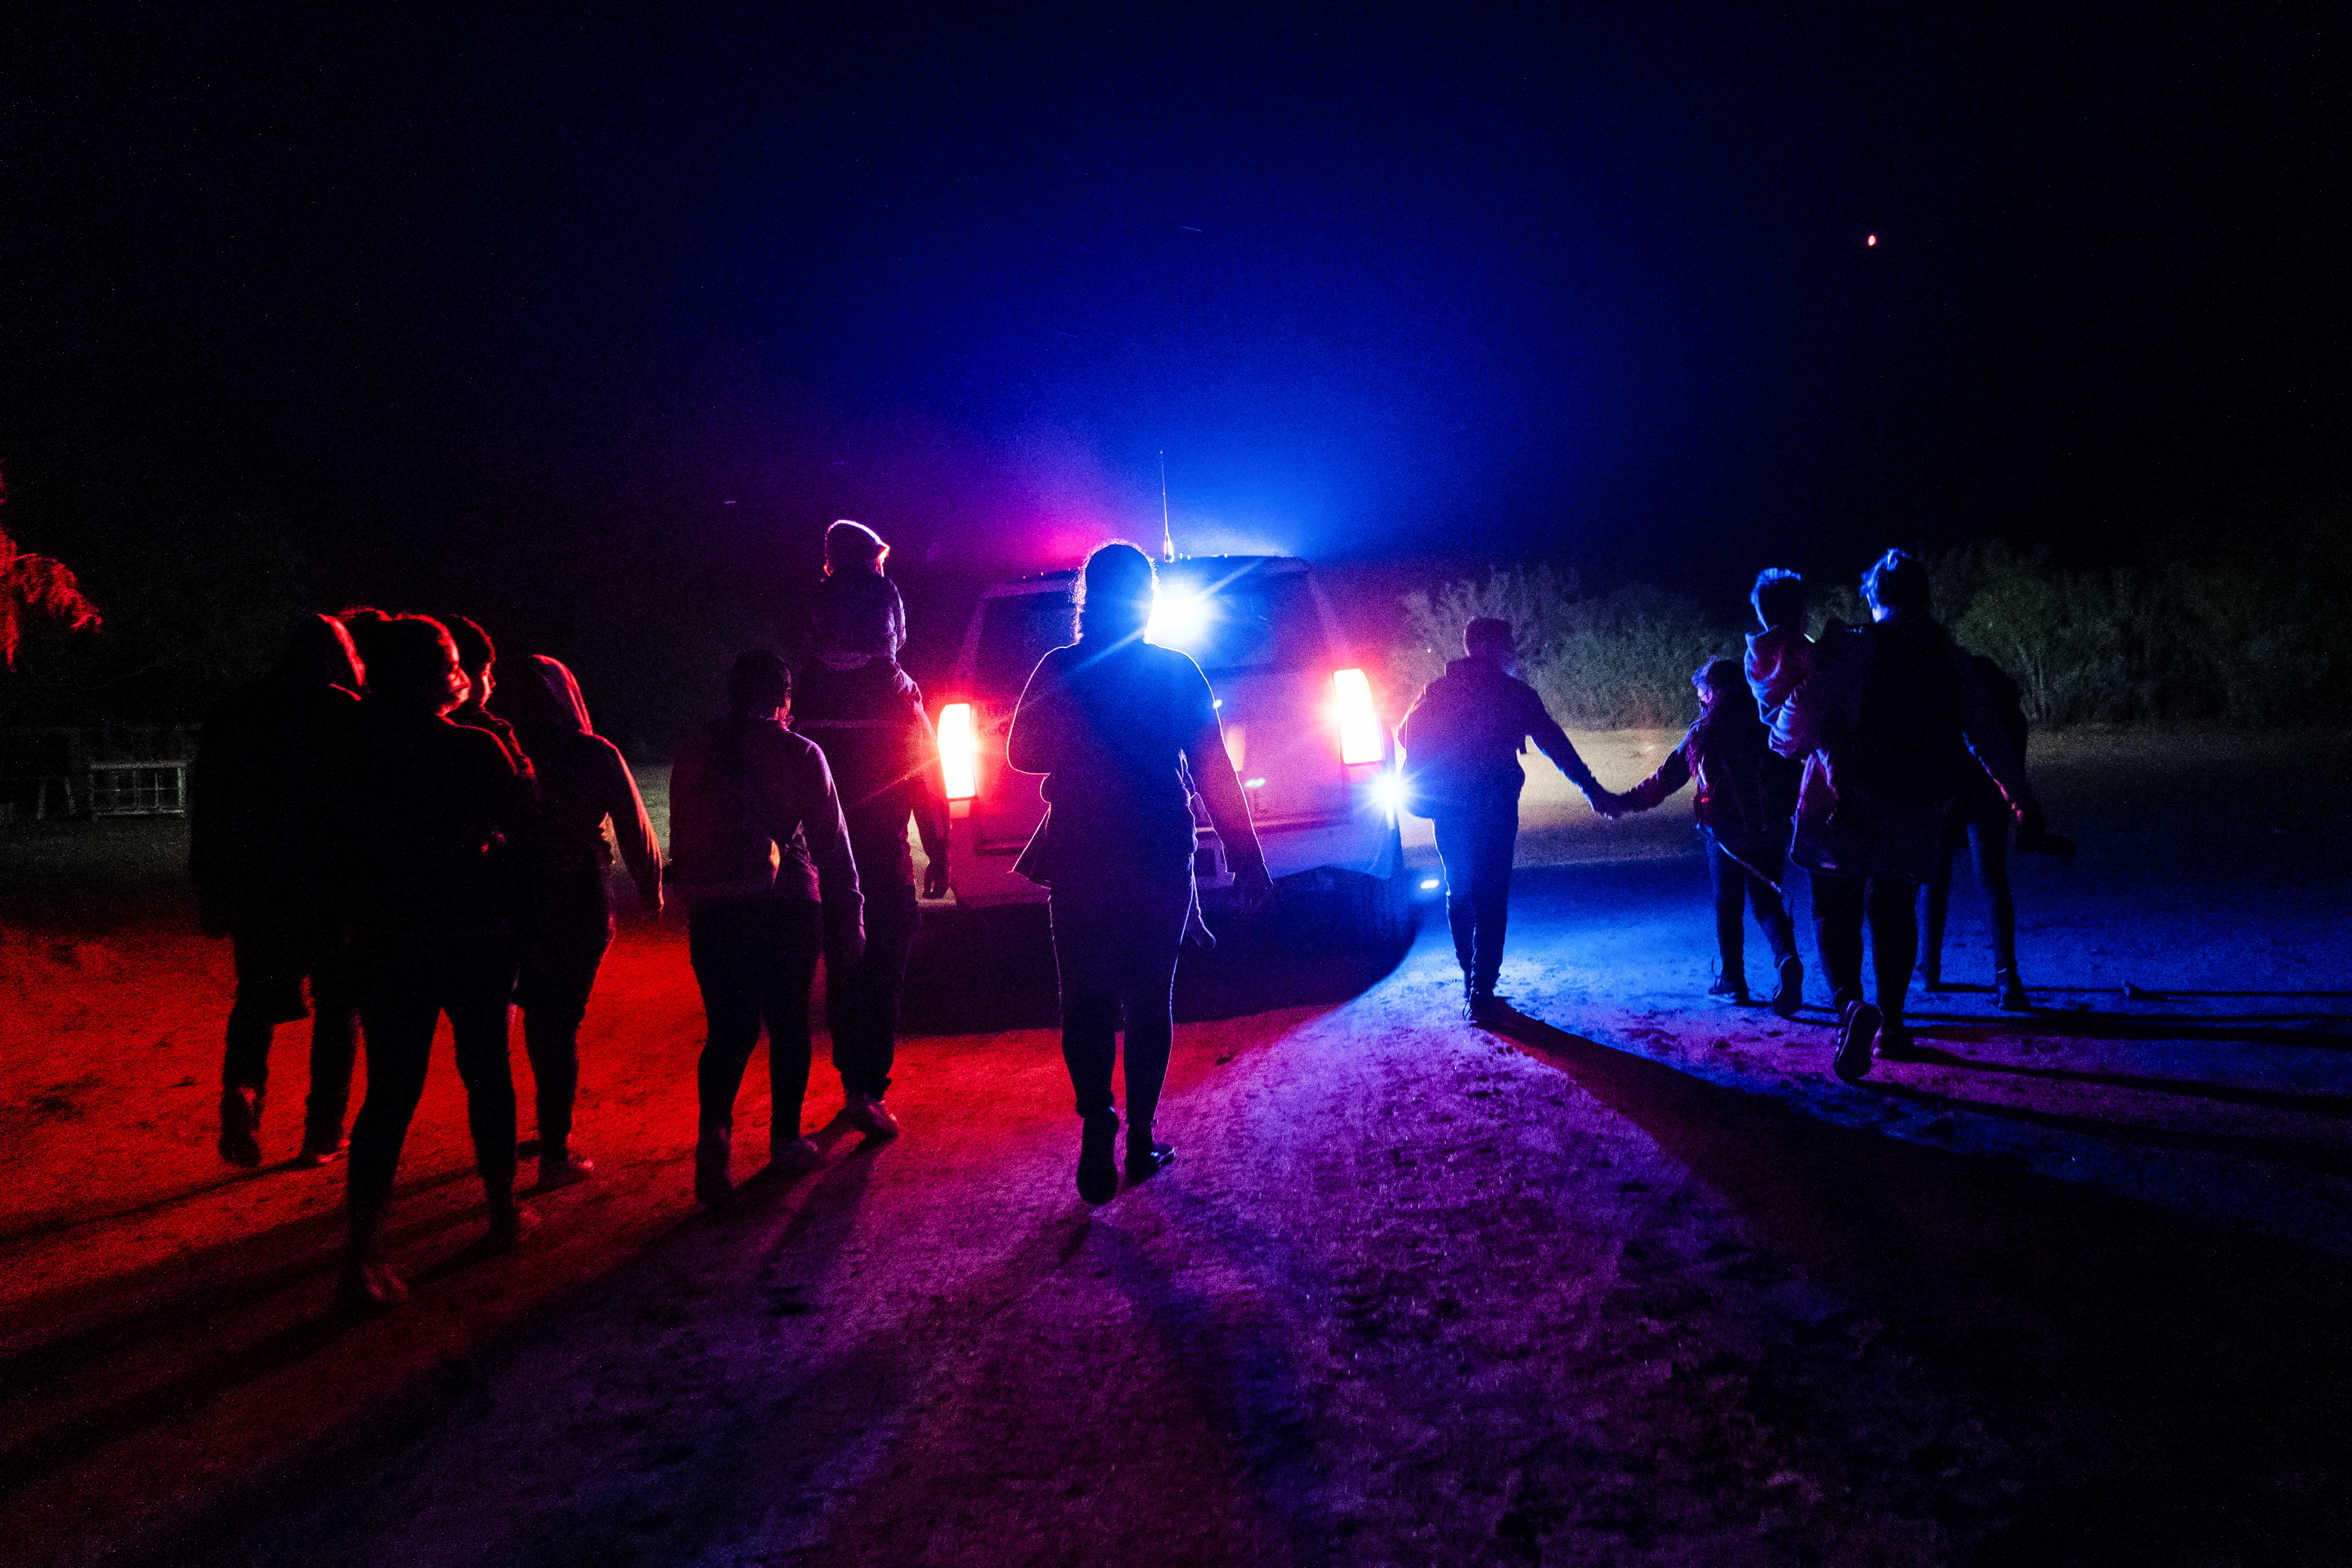 Asylum-seeking migrant families walk while being escorted by the U.S. Border Patrol after crossing the Rio Grande river into the United States from Mexico, in Roma, Texas, U.S. May 6, 2021. REUTERS/Go Nakamura